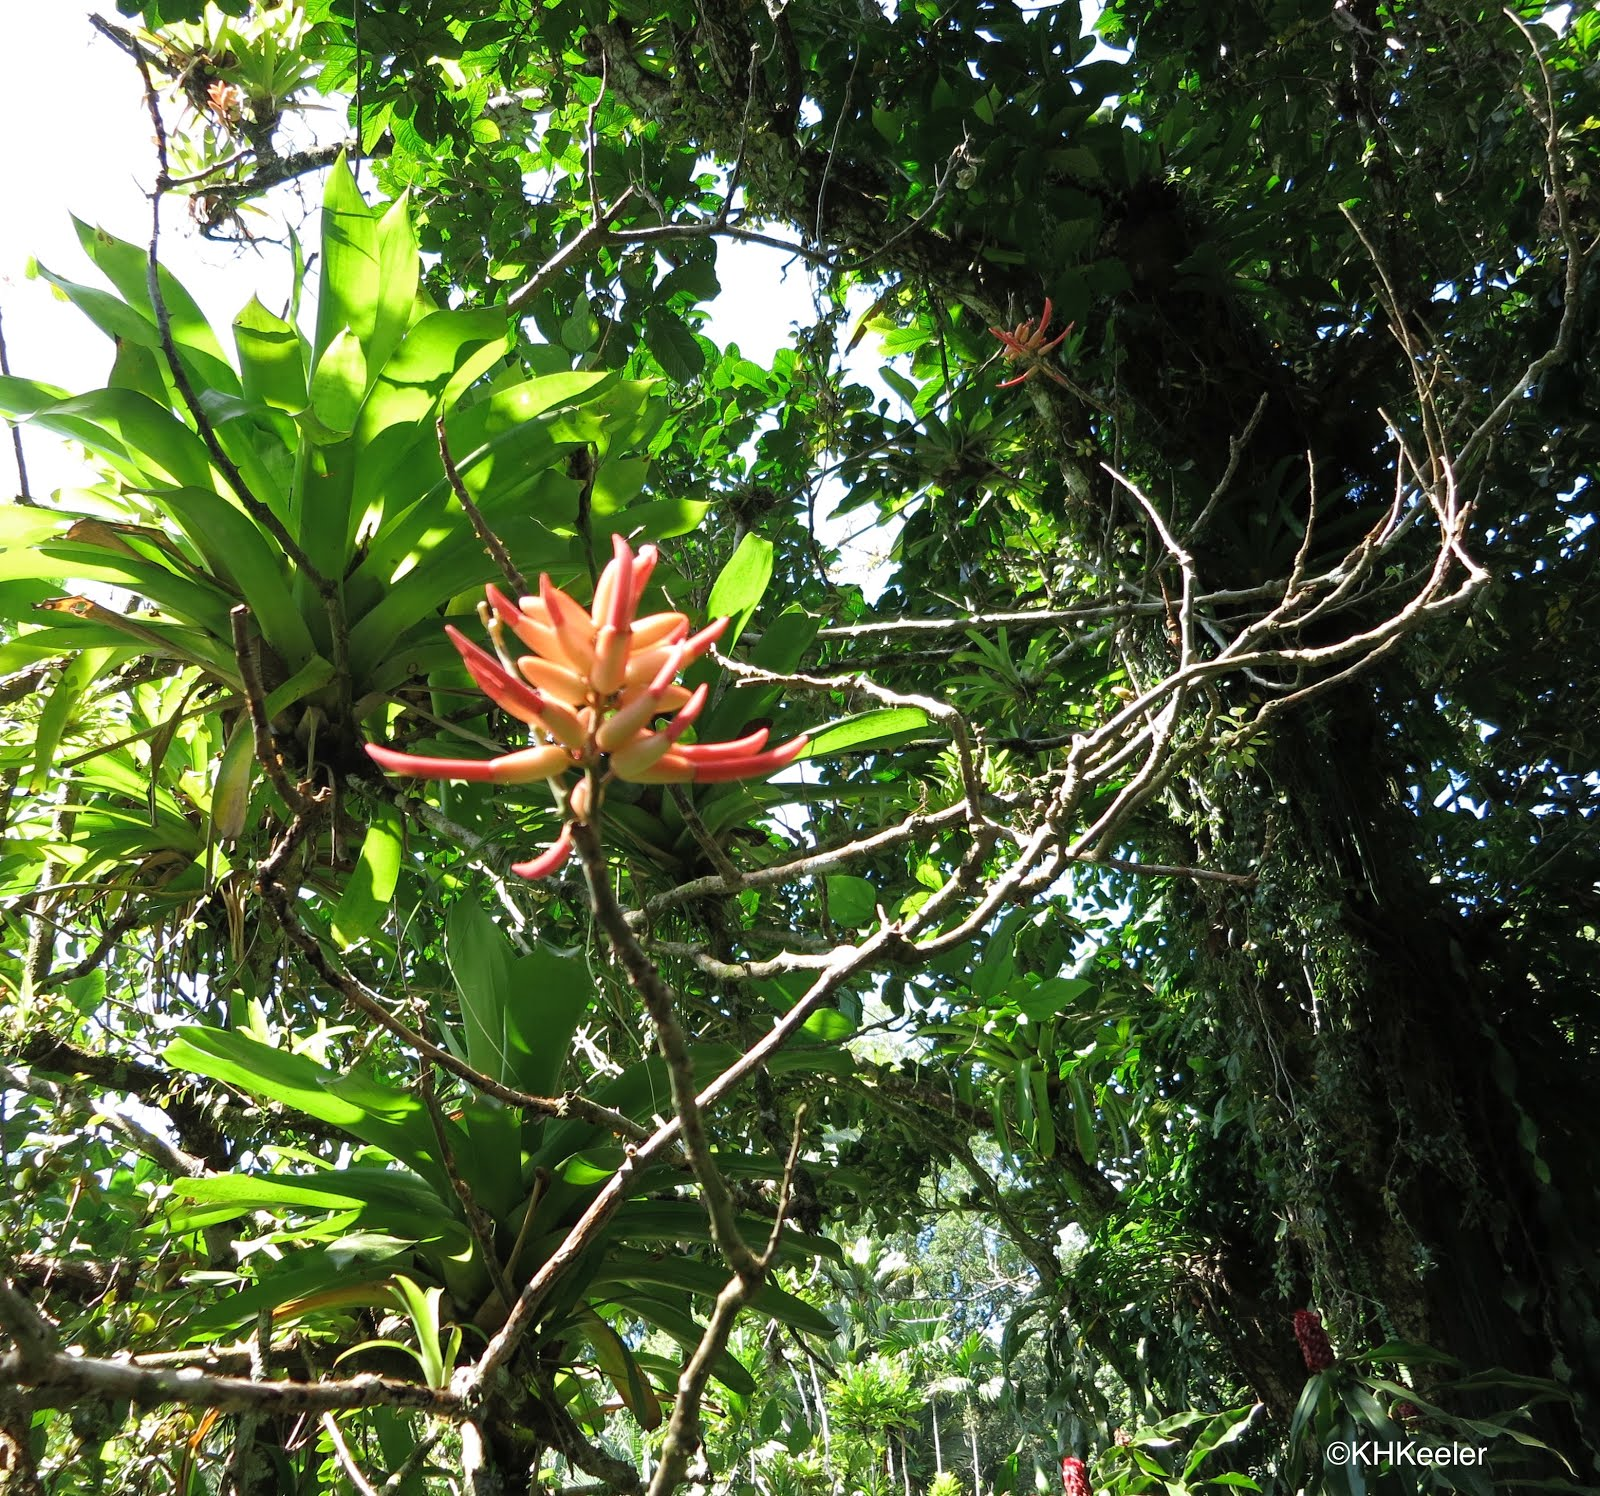 A wandering botanist plant story coral trees the erythrina species hawaii has an endemic coral tree erythrina sandwichensis the hawaiian name is wiliwili wili means twisted referring to the way the seed pods twist open izmirmasajfo